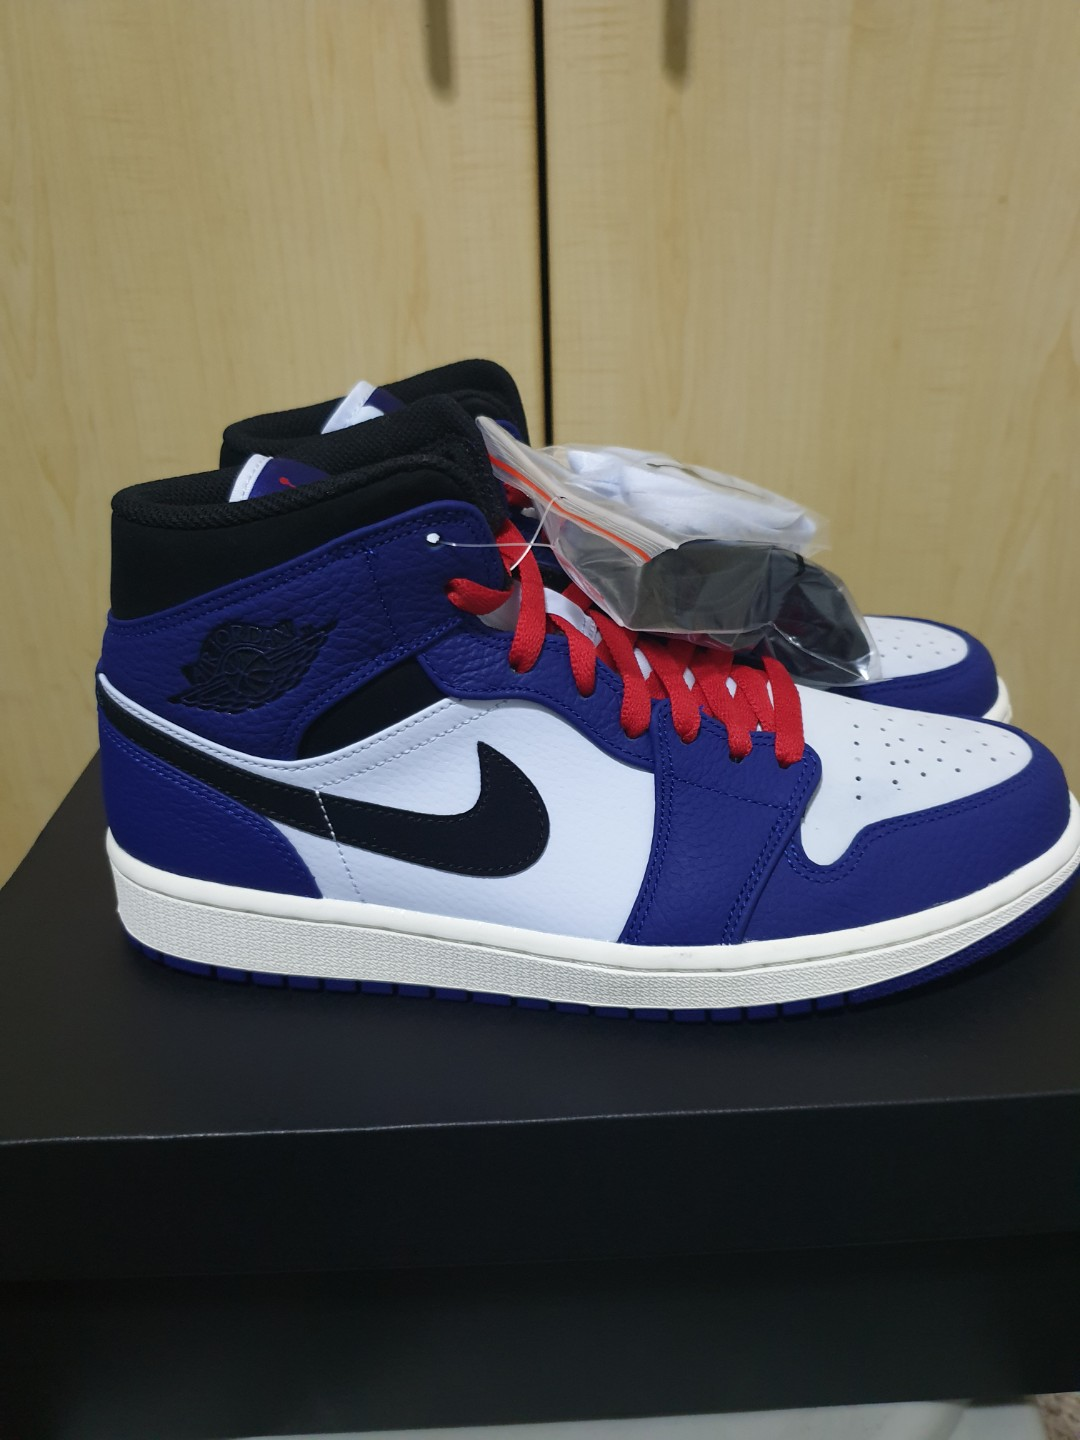 83c3a209cc1 Air Jordan 1 mid, Men's Fashion, Footwear, Sneakers on Carousell